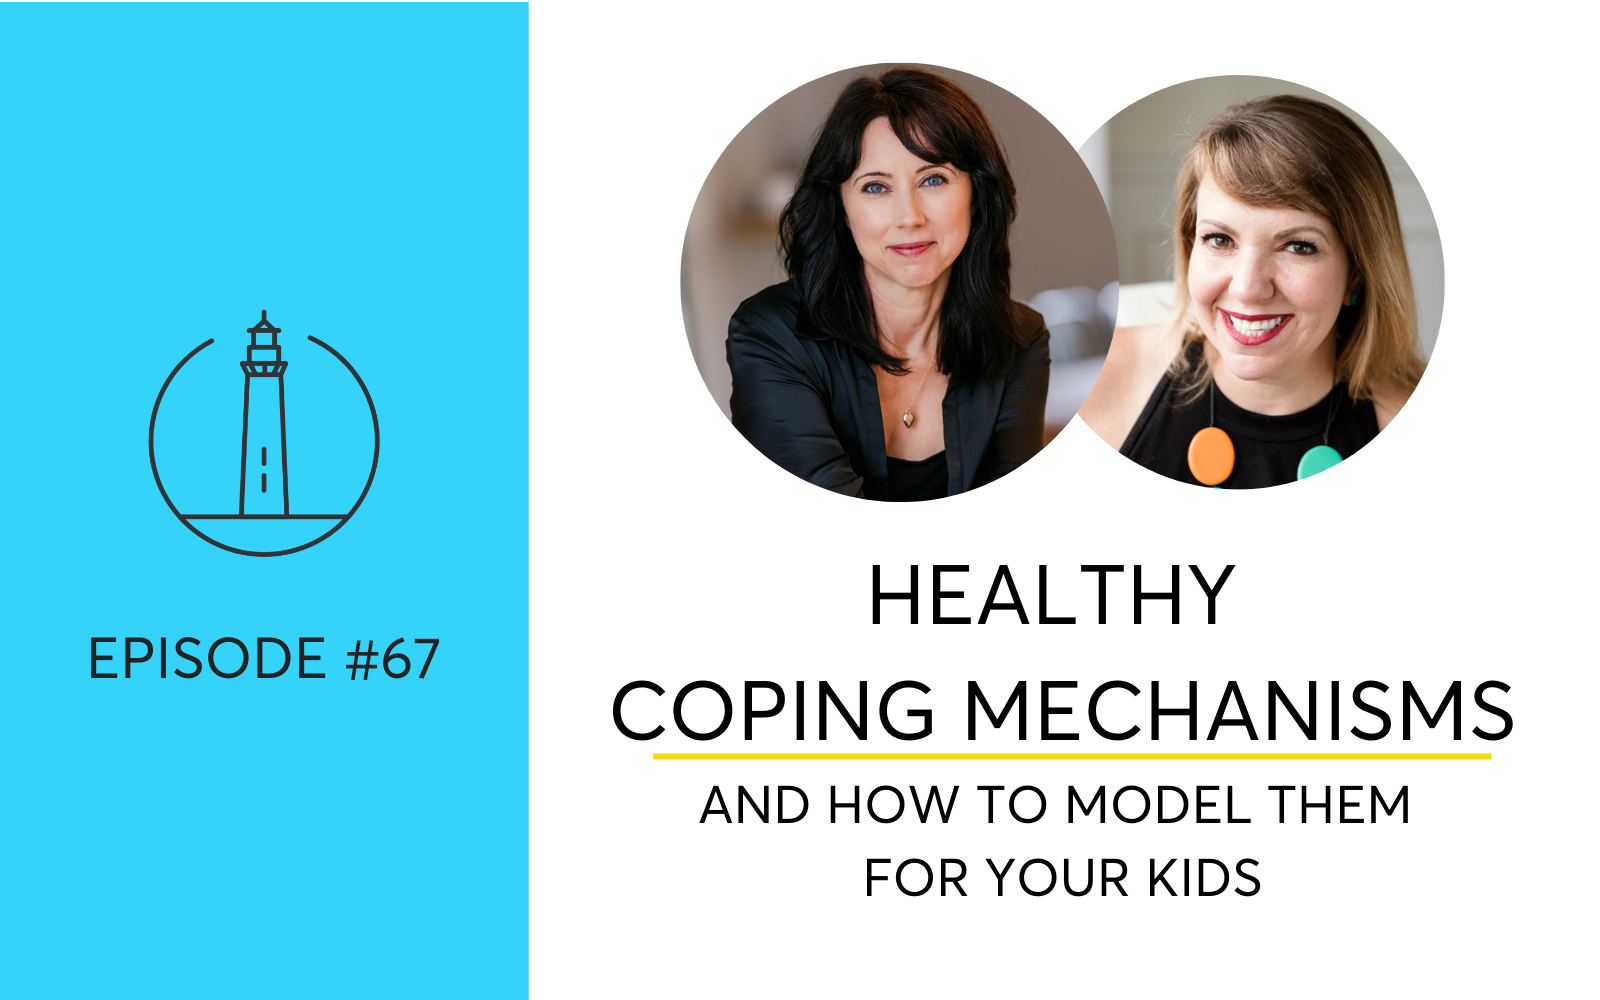 Healthy Coping Mechanisms For Stress